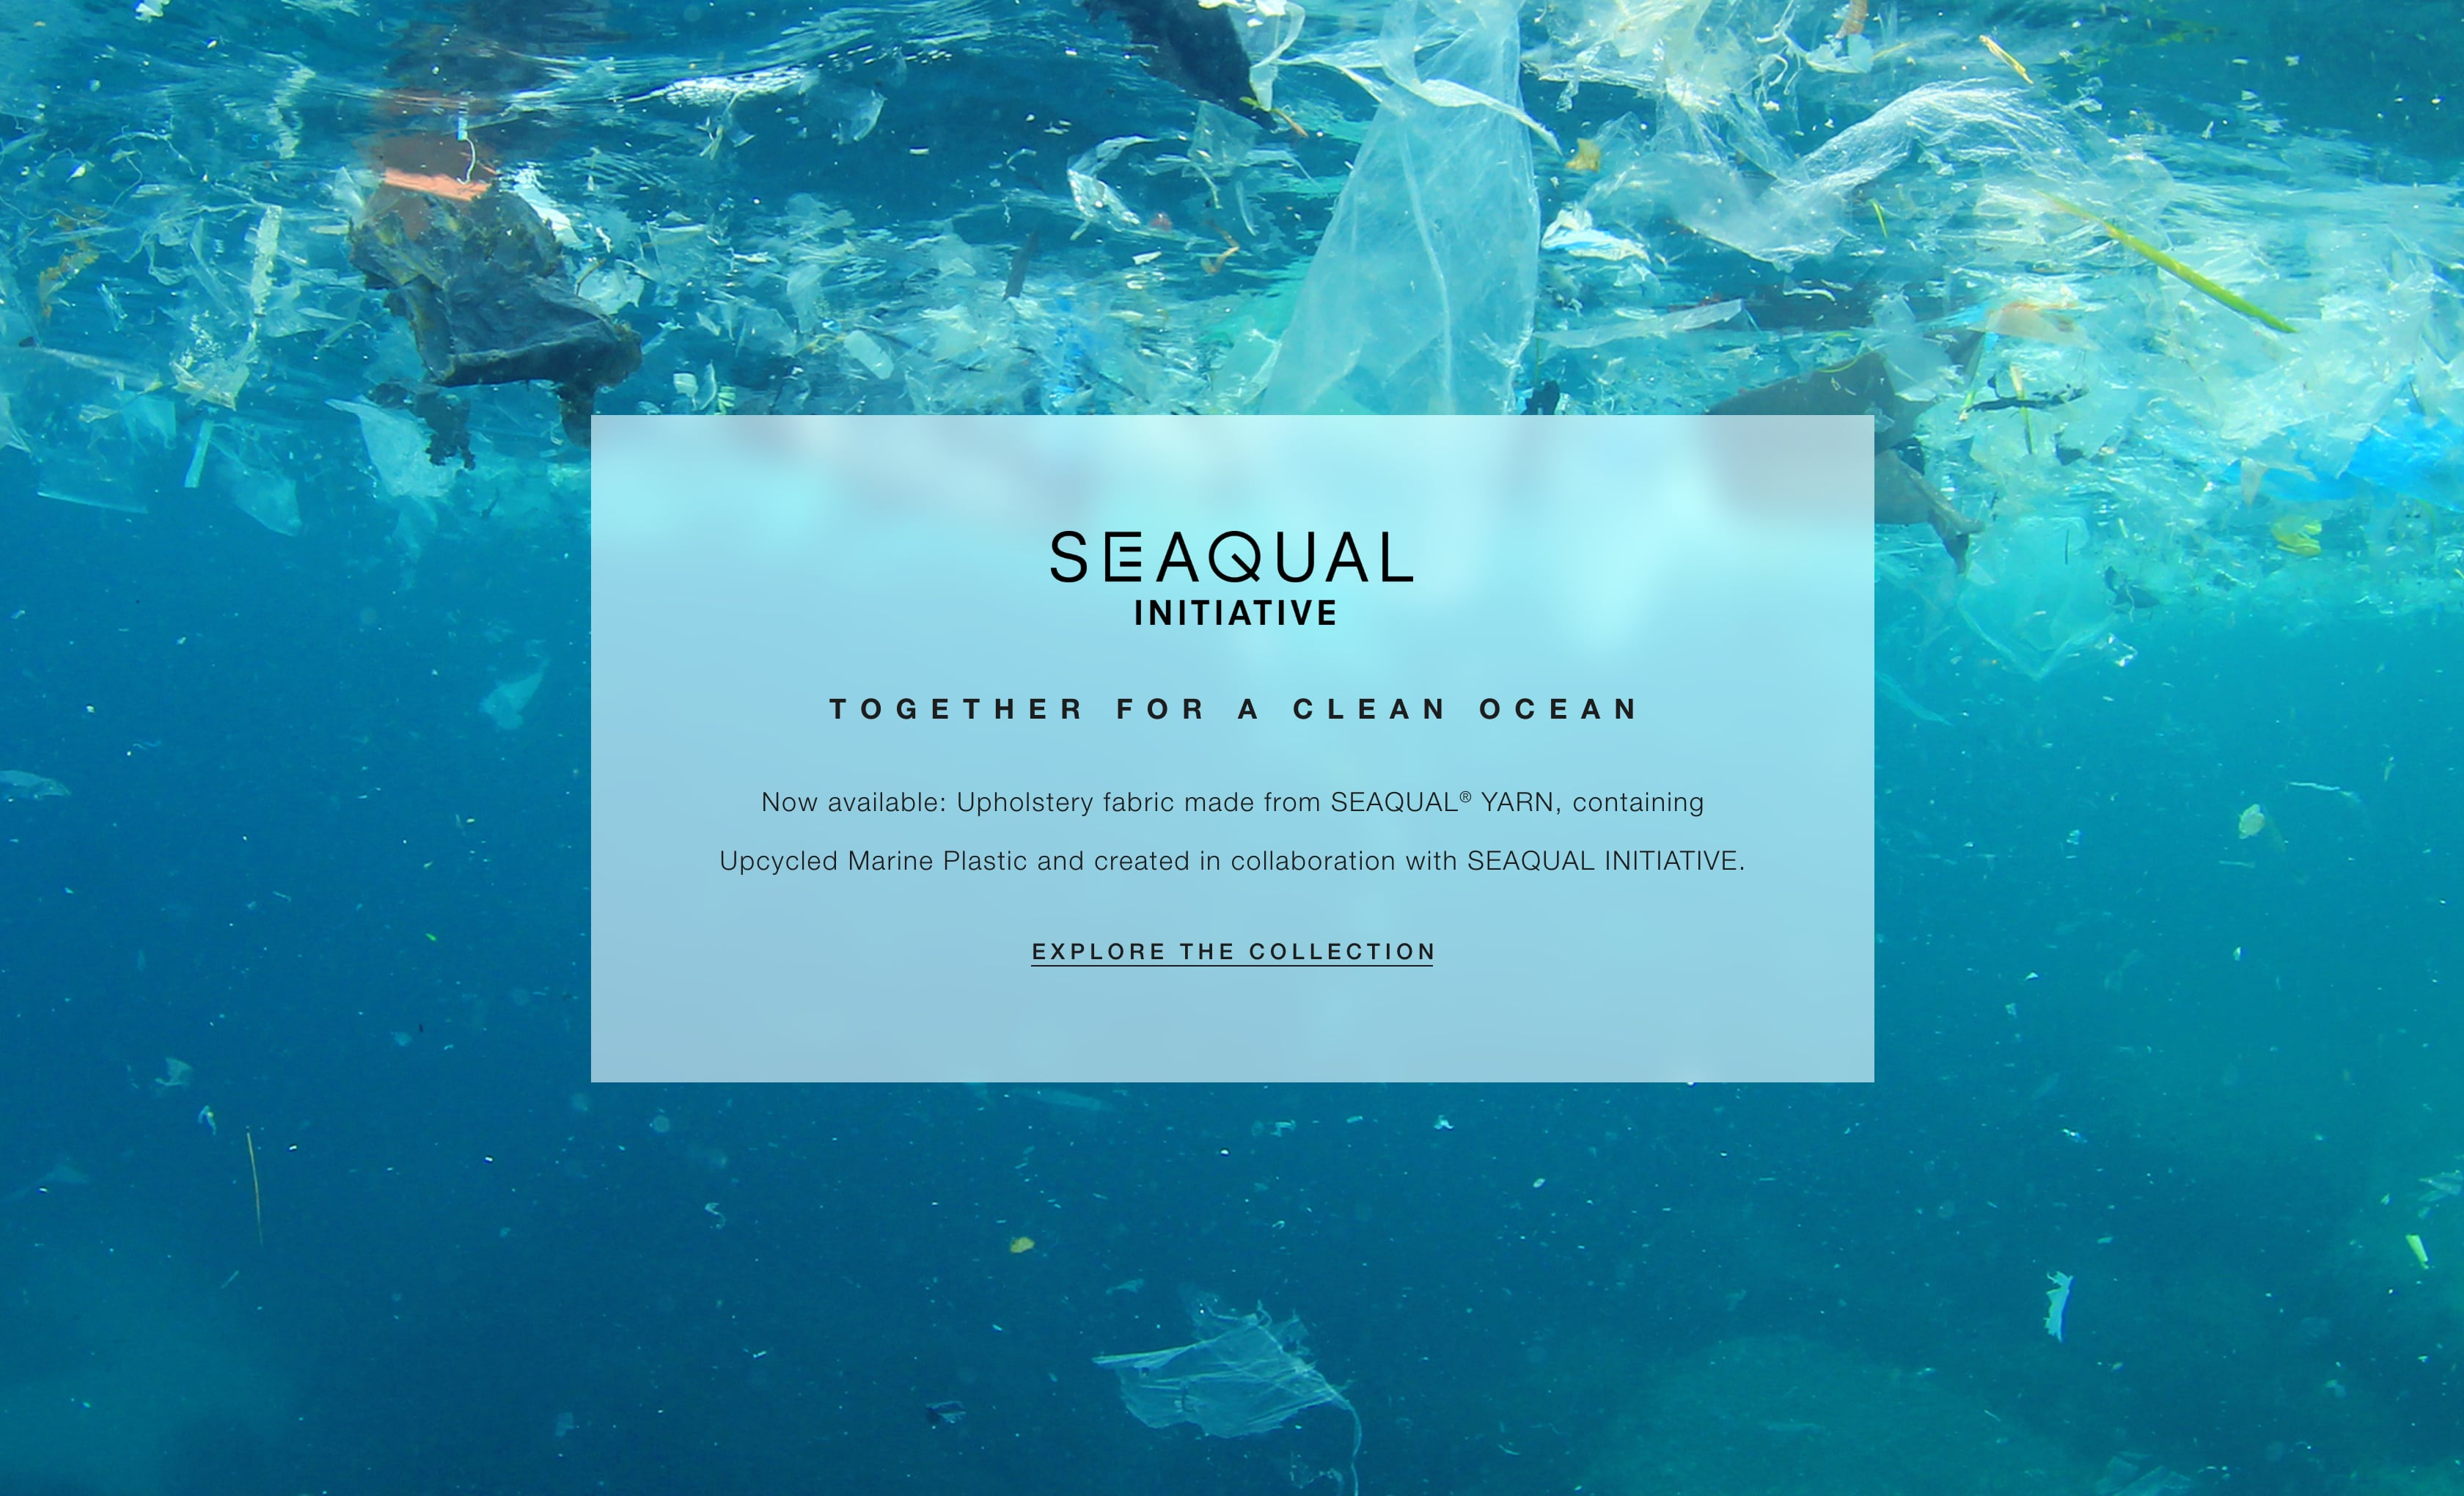 Learn More About SEAQUAL INITIATIVE